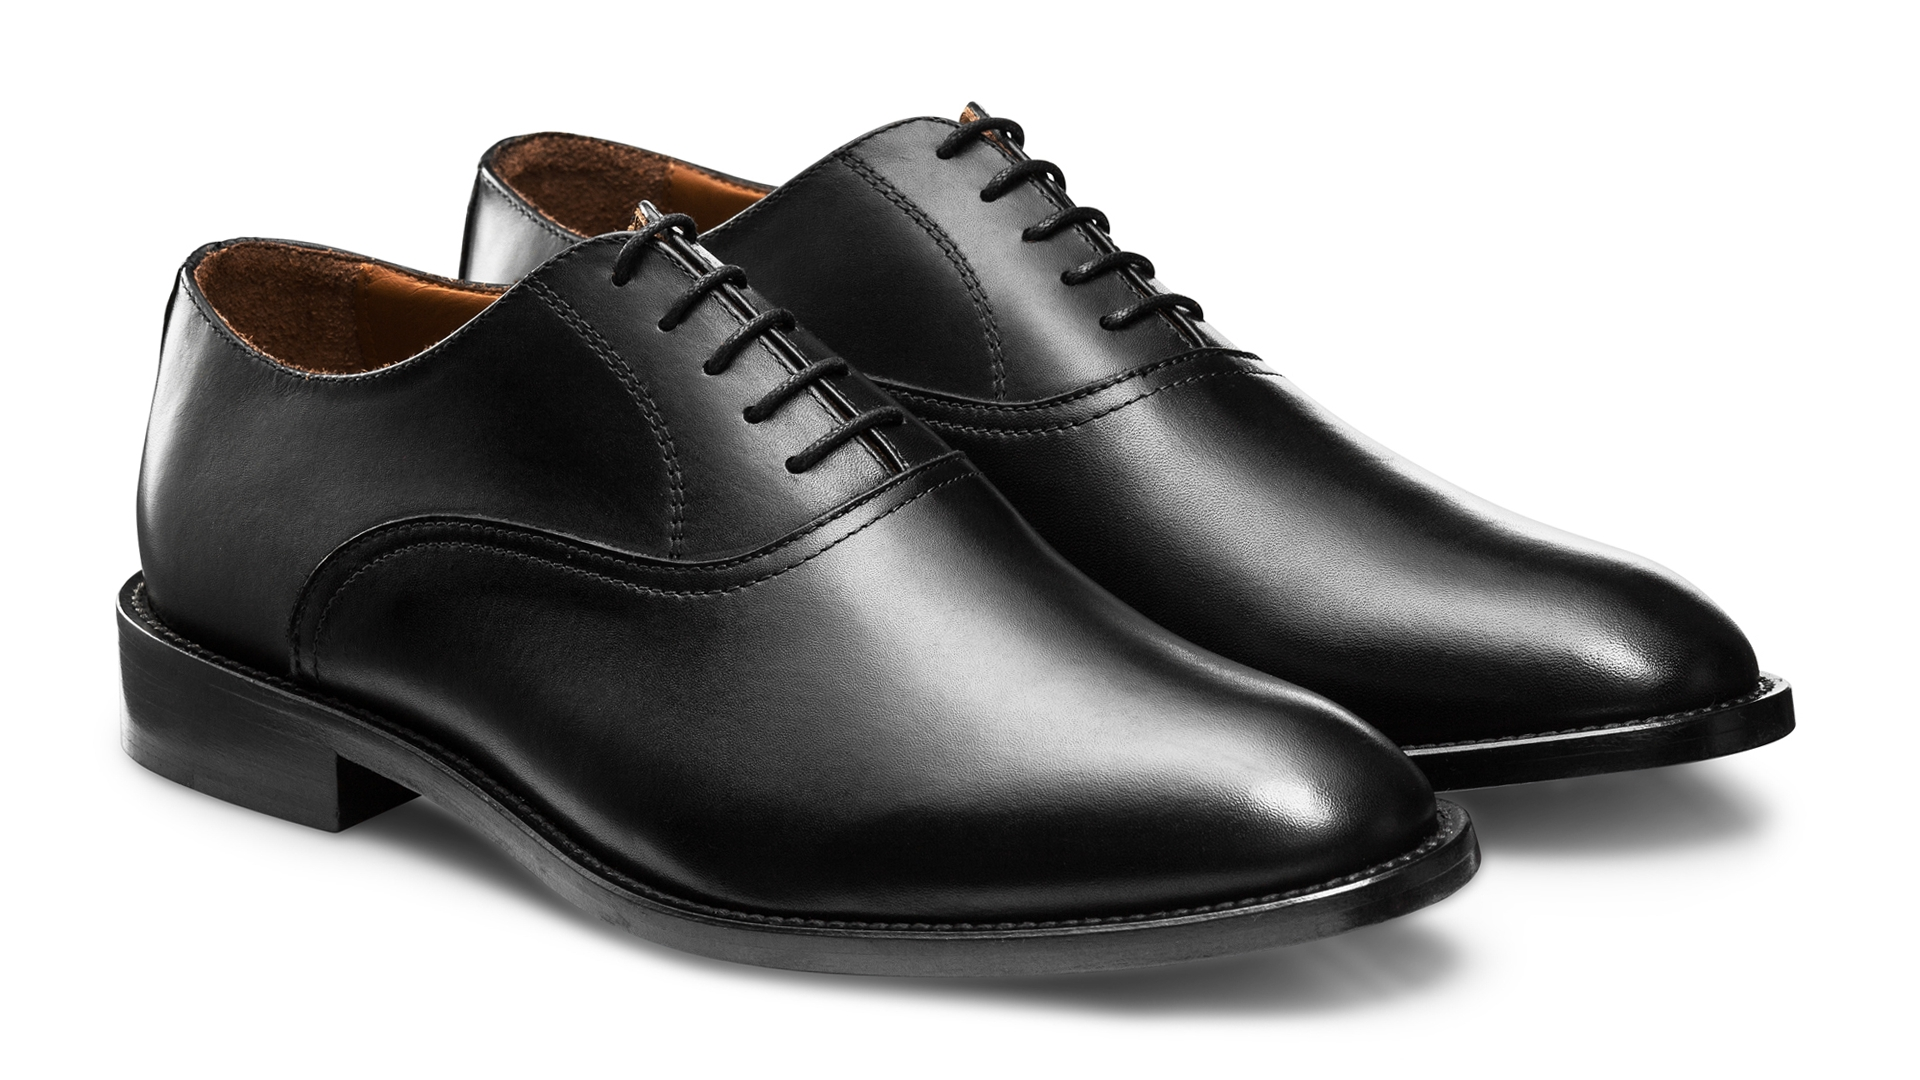 What Mens Dress Shoes Are In Style